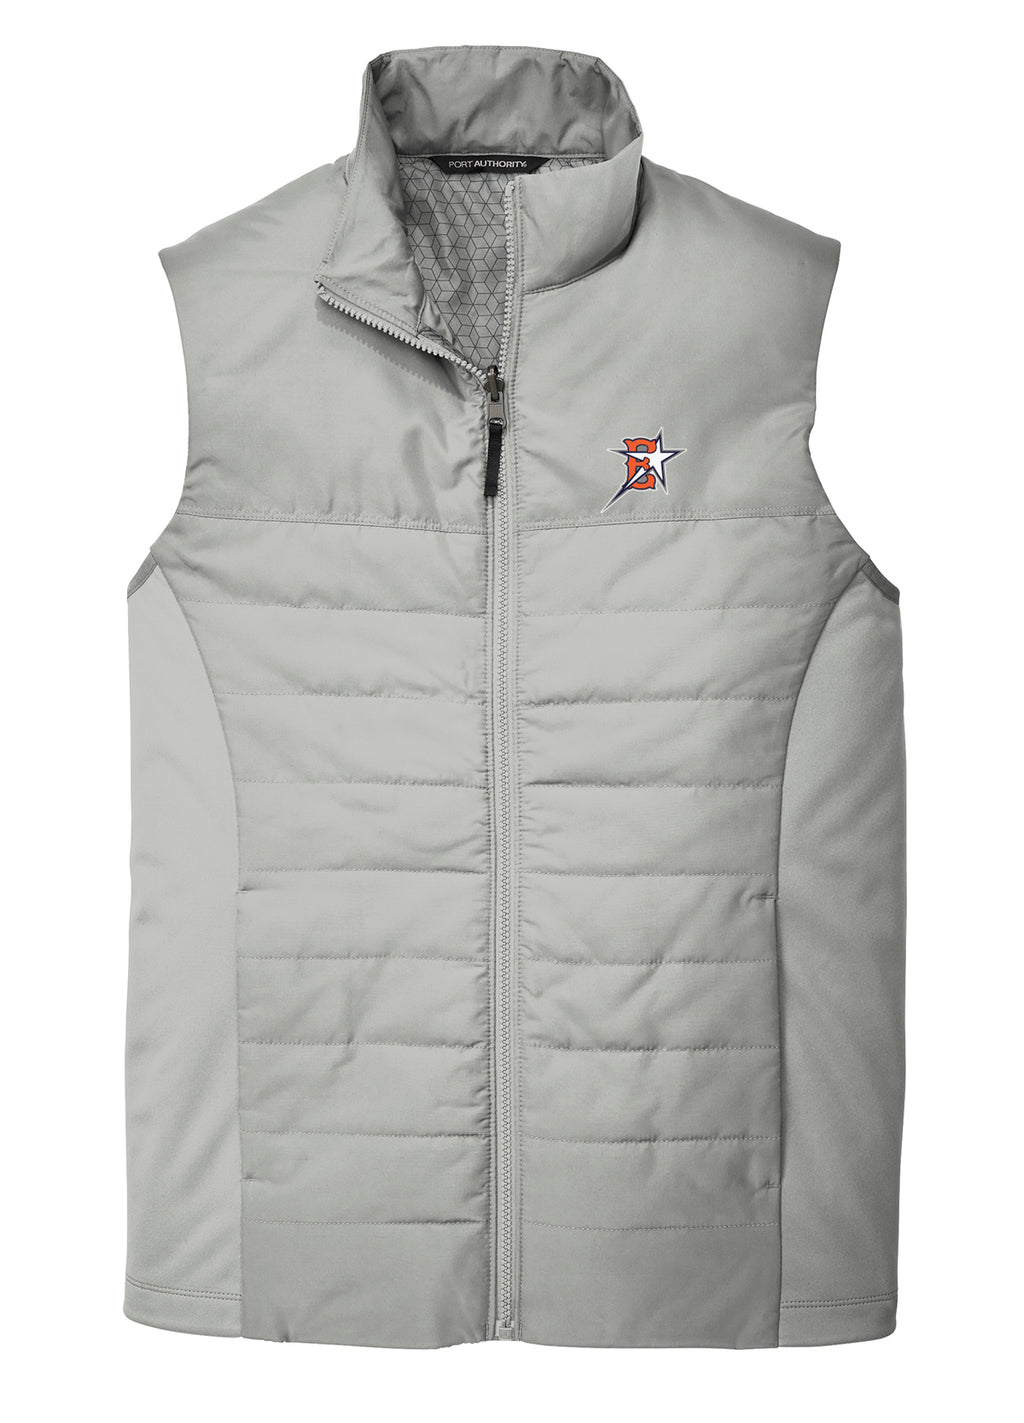 Eastvale Girl's Softball Vest